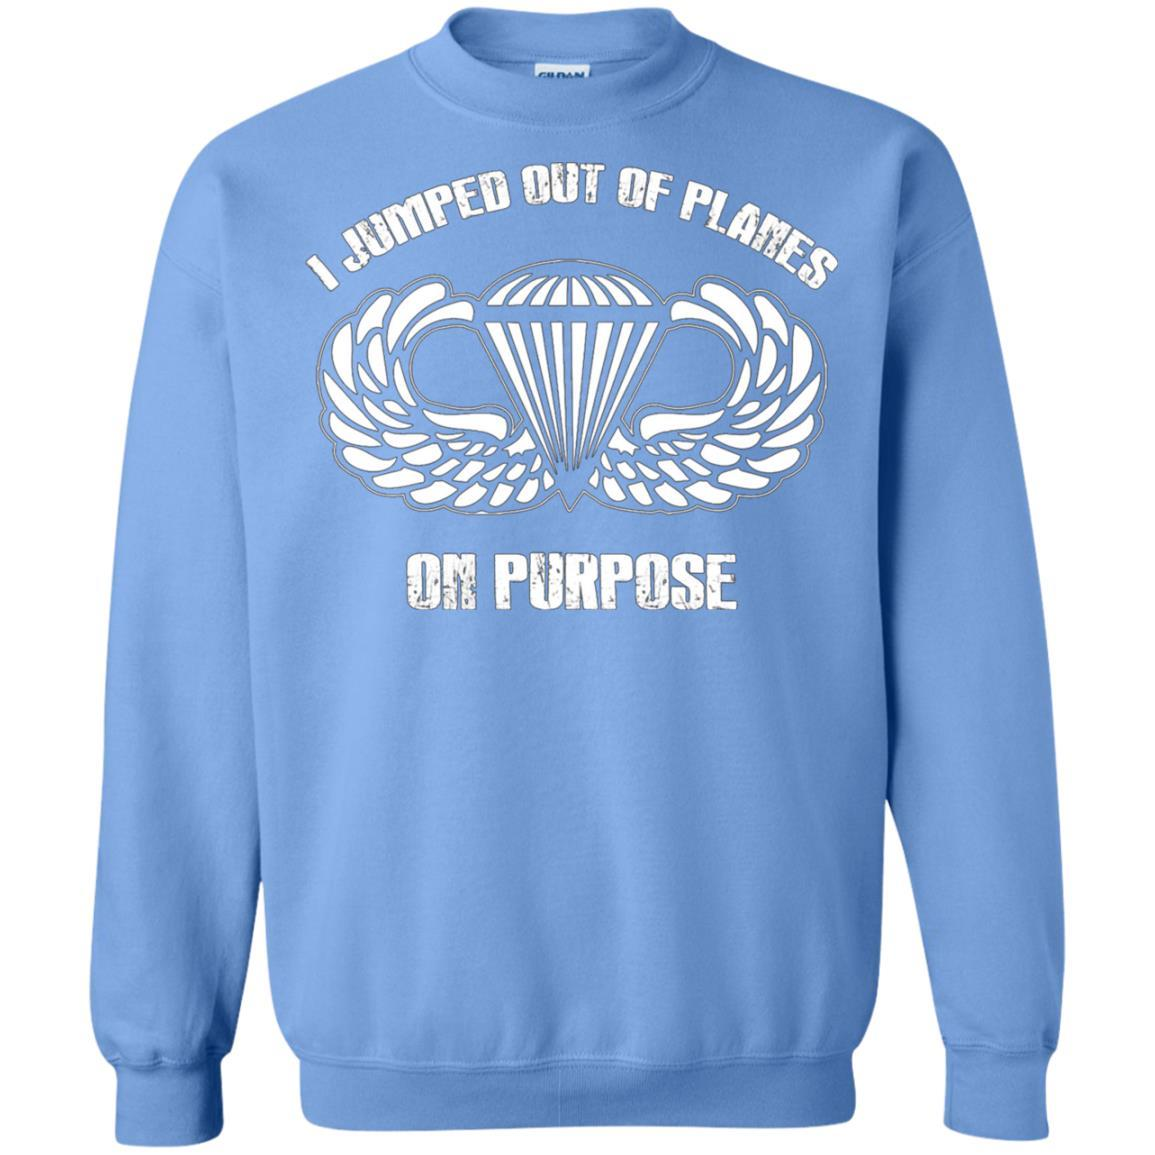 I jumped out of planes on purpose, Airborne - Crewneck Pullover Sweatshirt Carolina Blue / 5XL